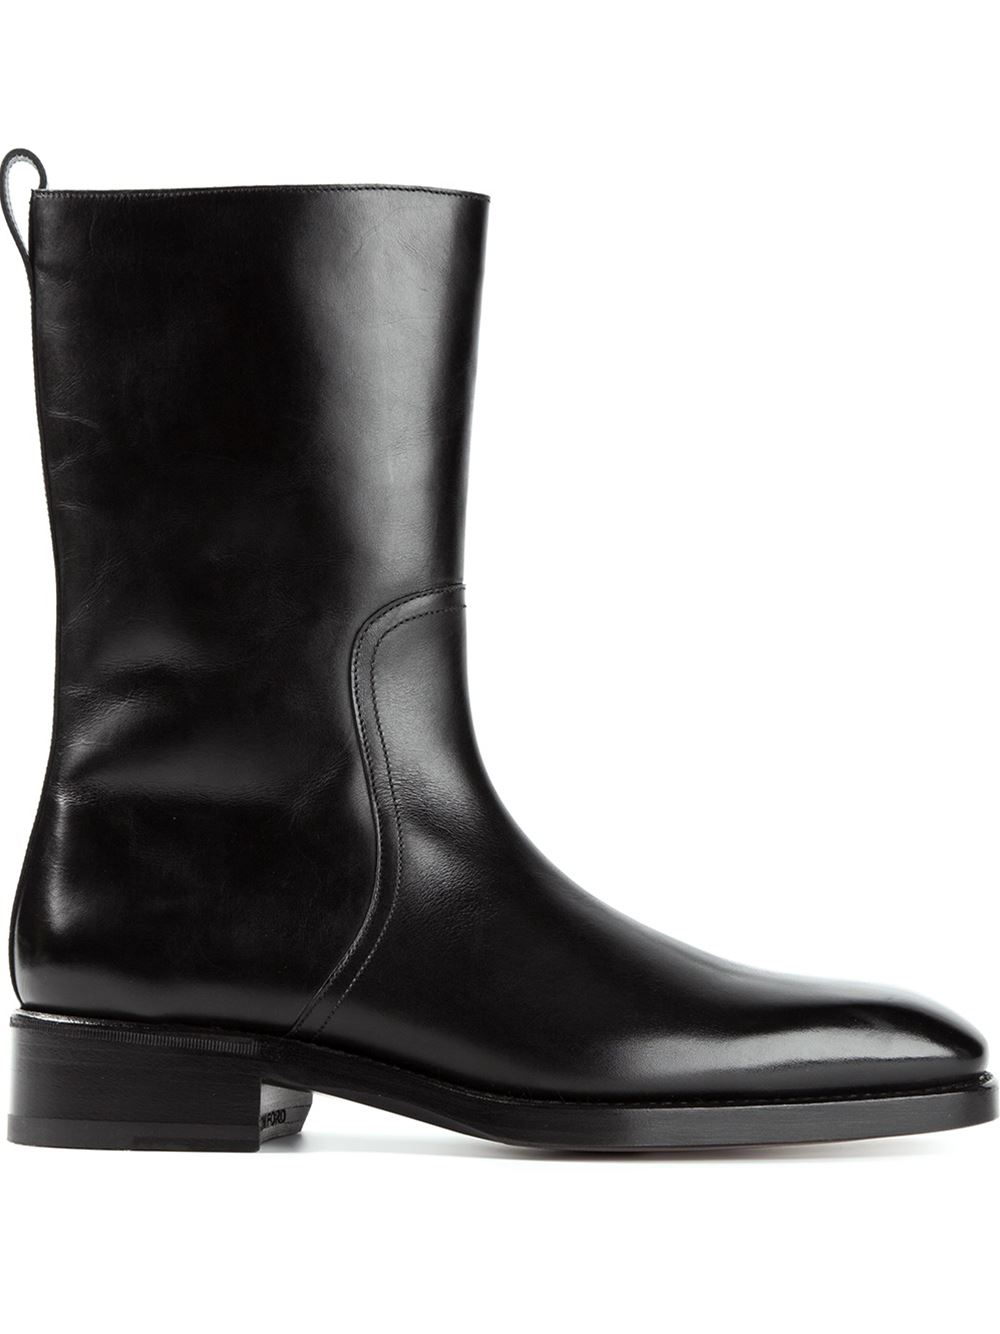 Tom ford Side Zip Boots in Black for Men | Lyst